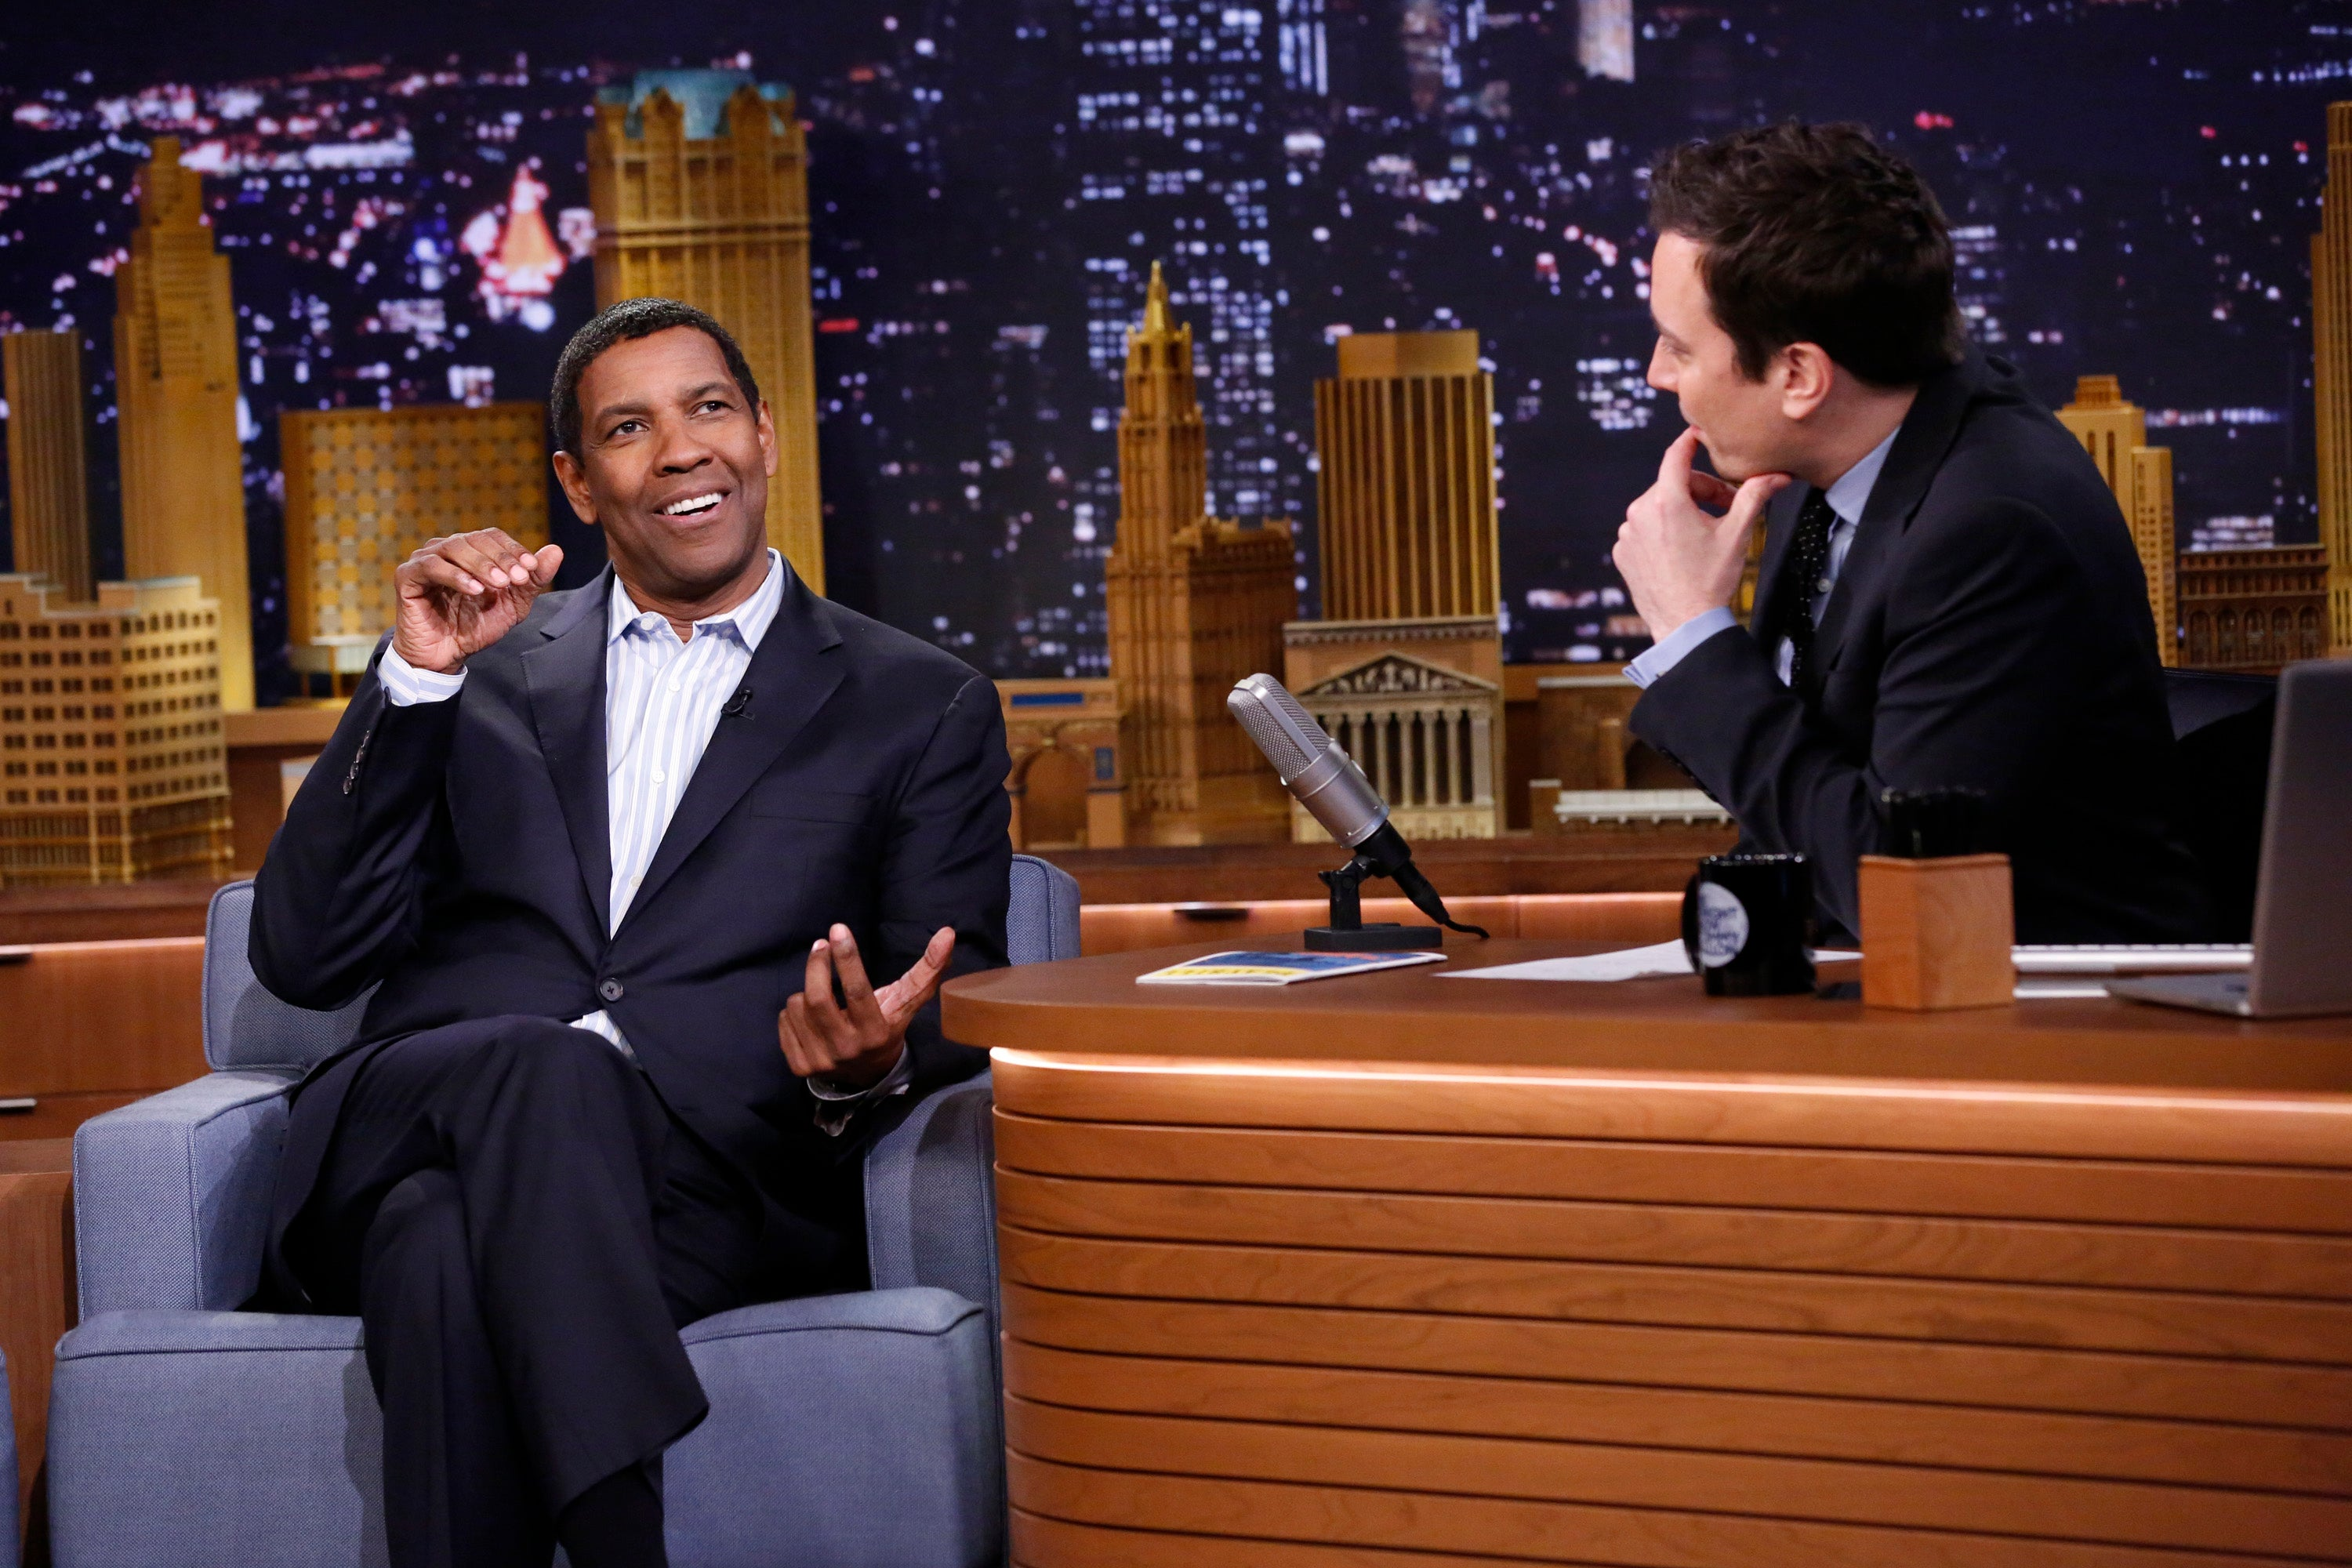 Denzel Washington Dramatically Reading Greeting Cards Is The Only Thing You Need To See Today